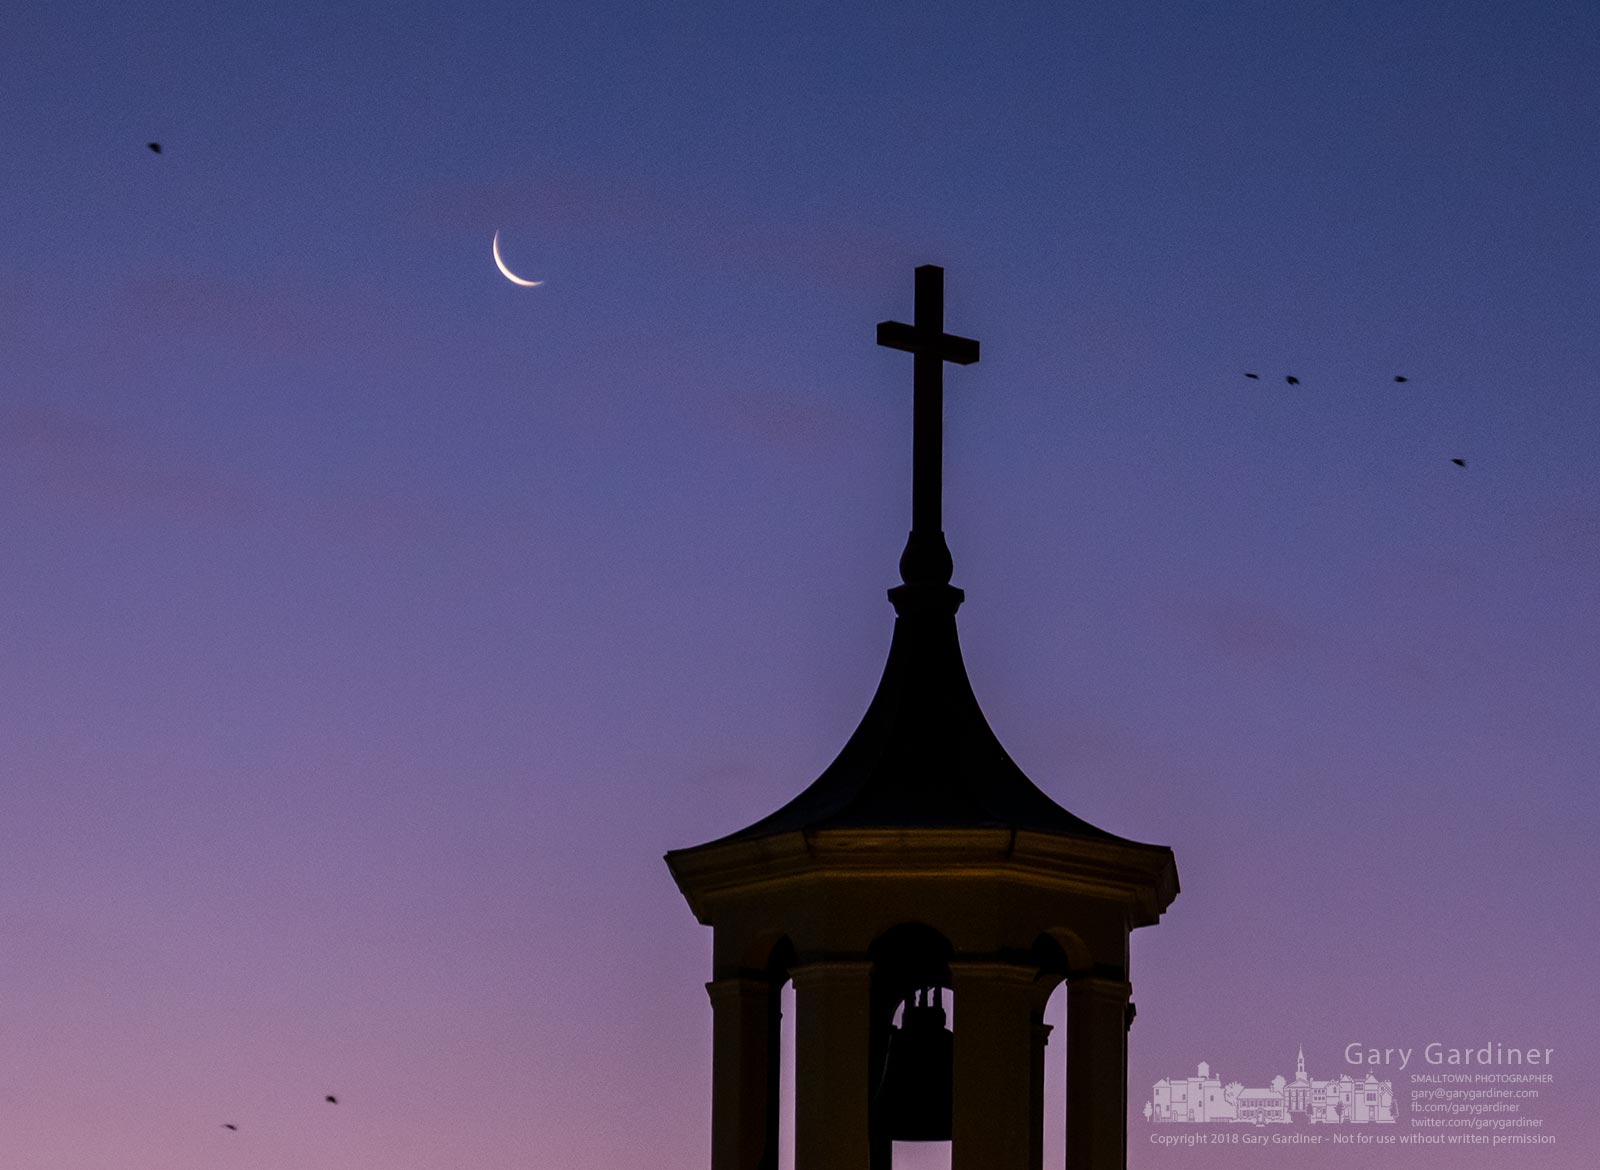 A crescent moon rises behind the old bell tower at St. Paul the Apostle Catholic Church early on Sunday morning. My Final Photo for Jan. 14, 2018.